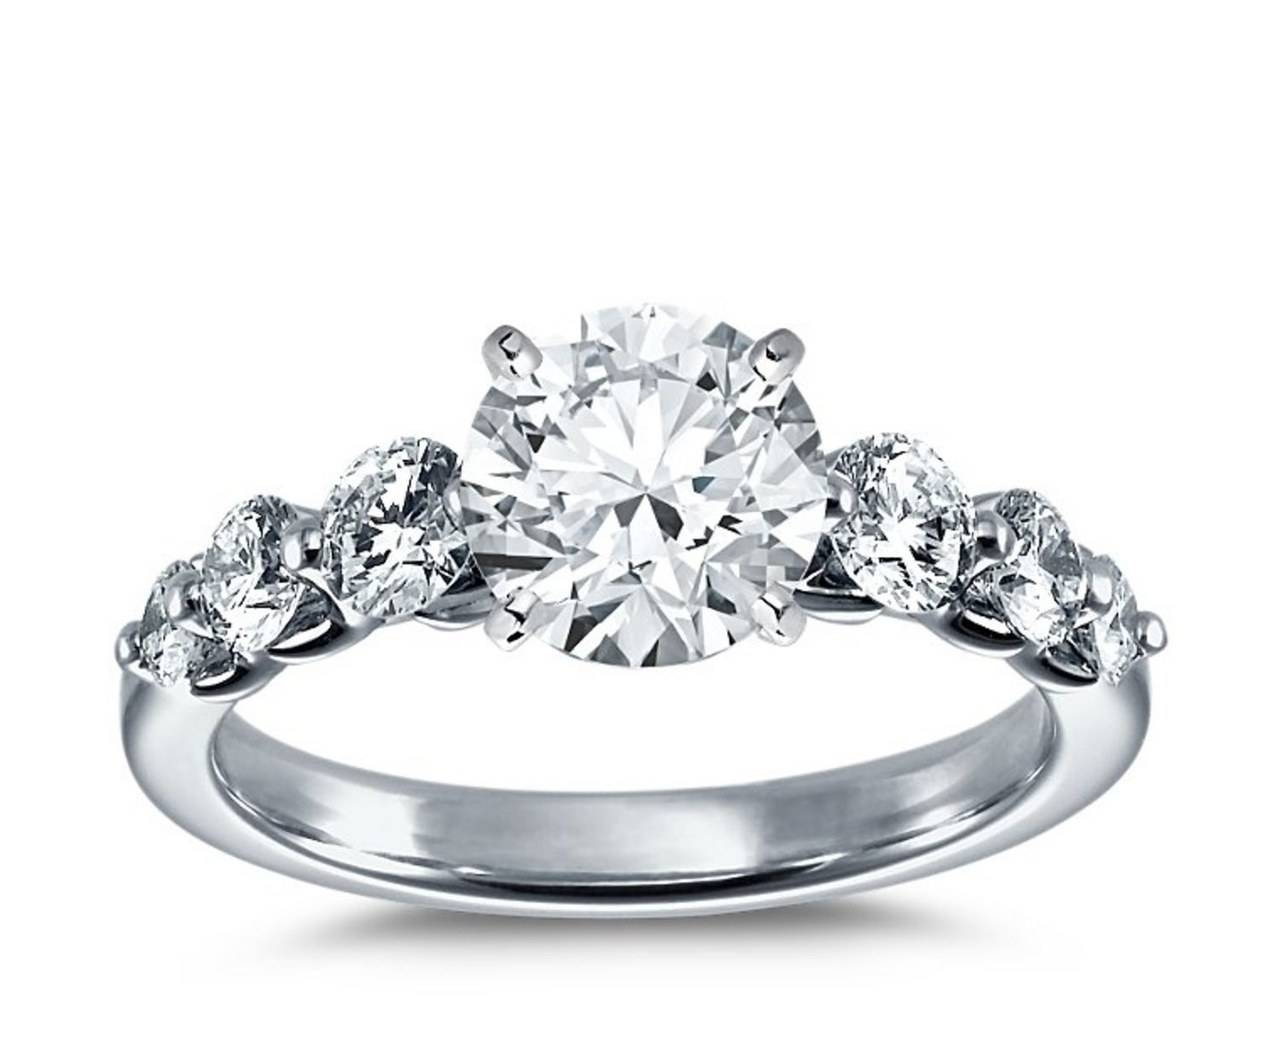 Blue Nile's 5 Most Pinned Engagement Rings (View 9 of 15)